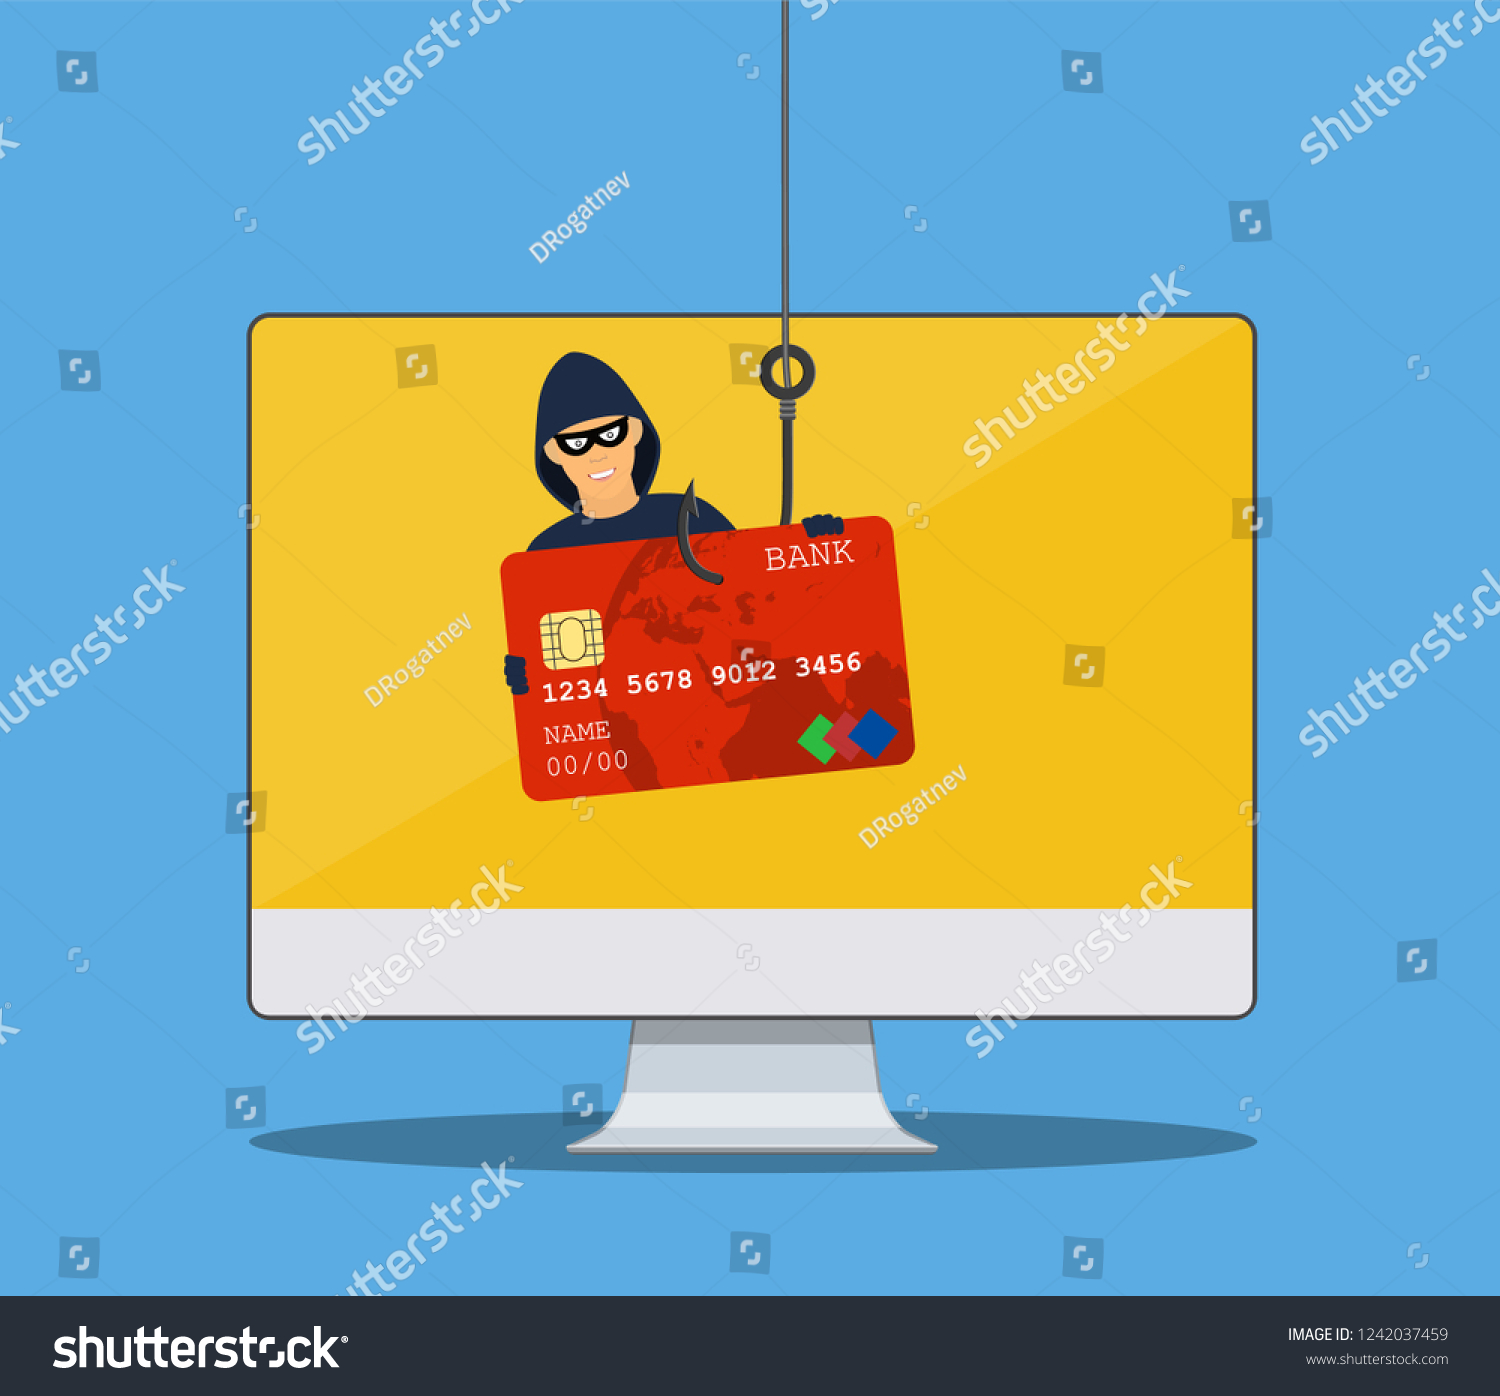 Royalty Free Stock Illustration of Thief Hacker Mask Stealing Credit